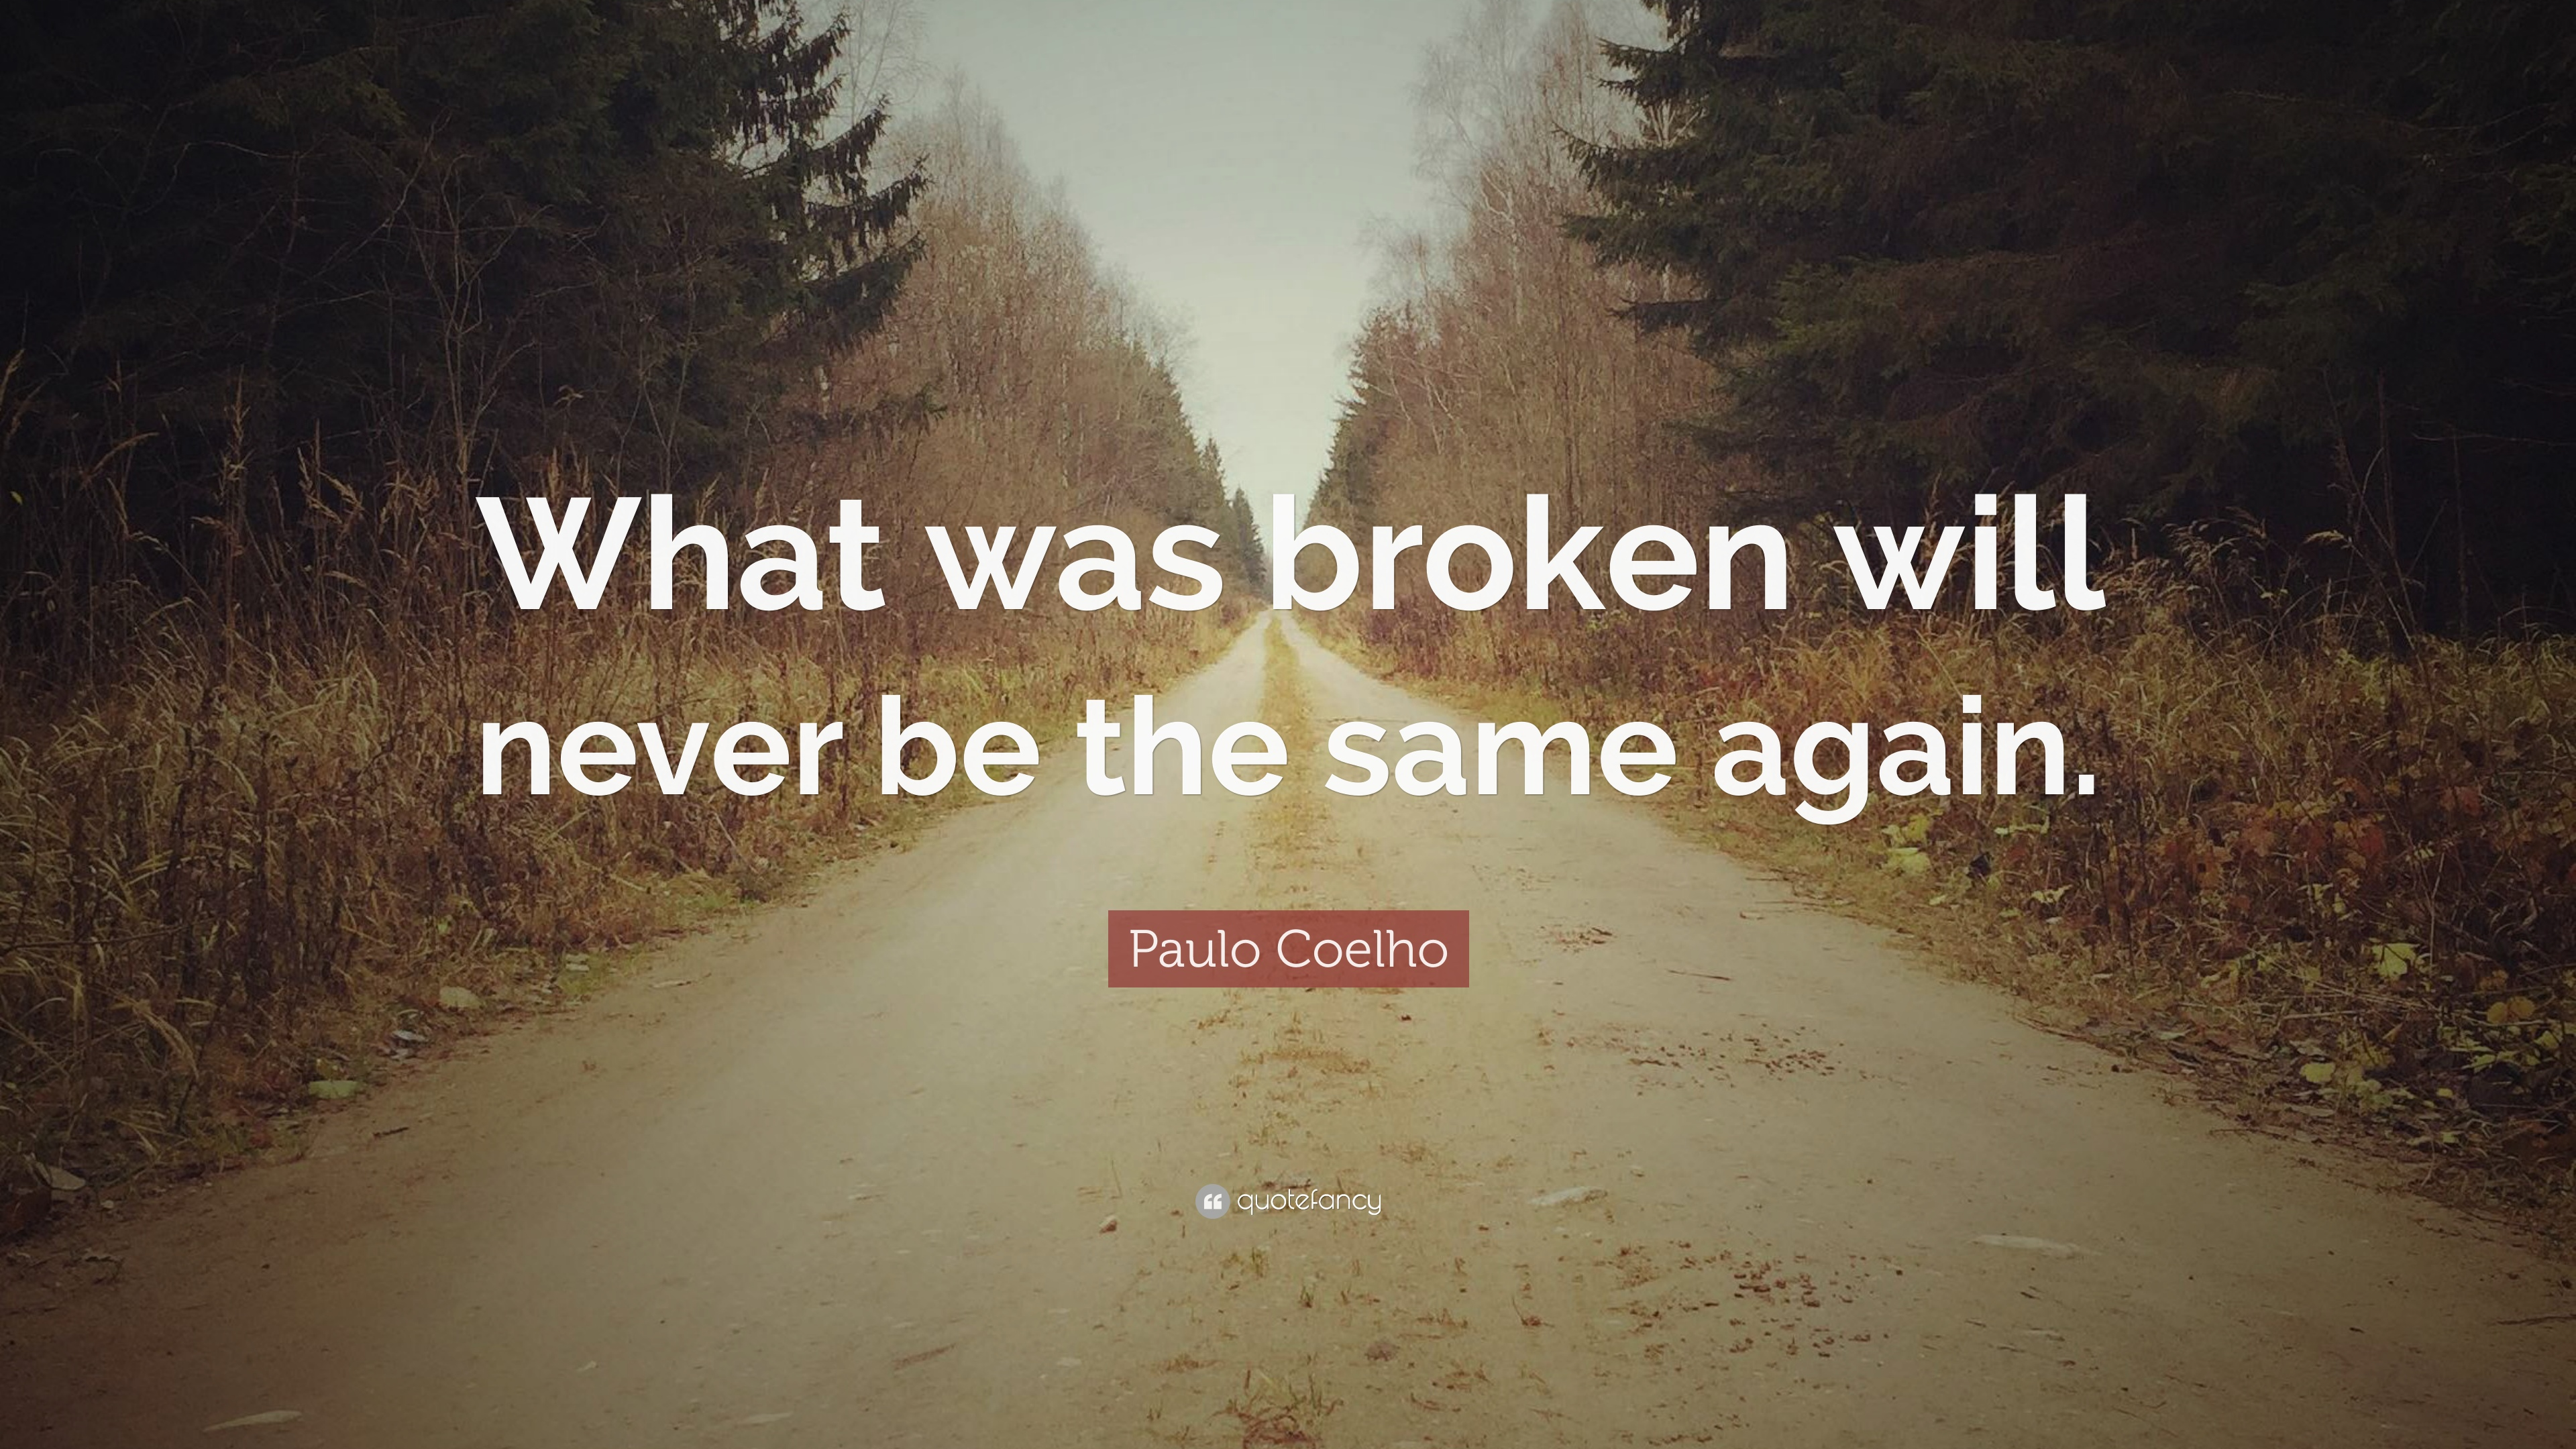 Paulo Coelho Quote What Was Broken Will Never Be The Same Again